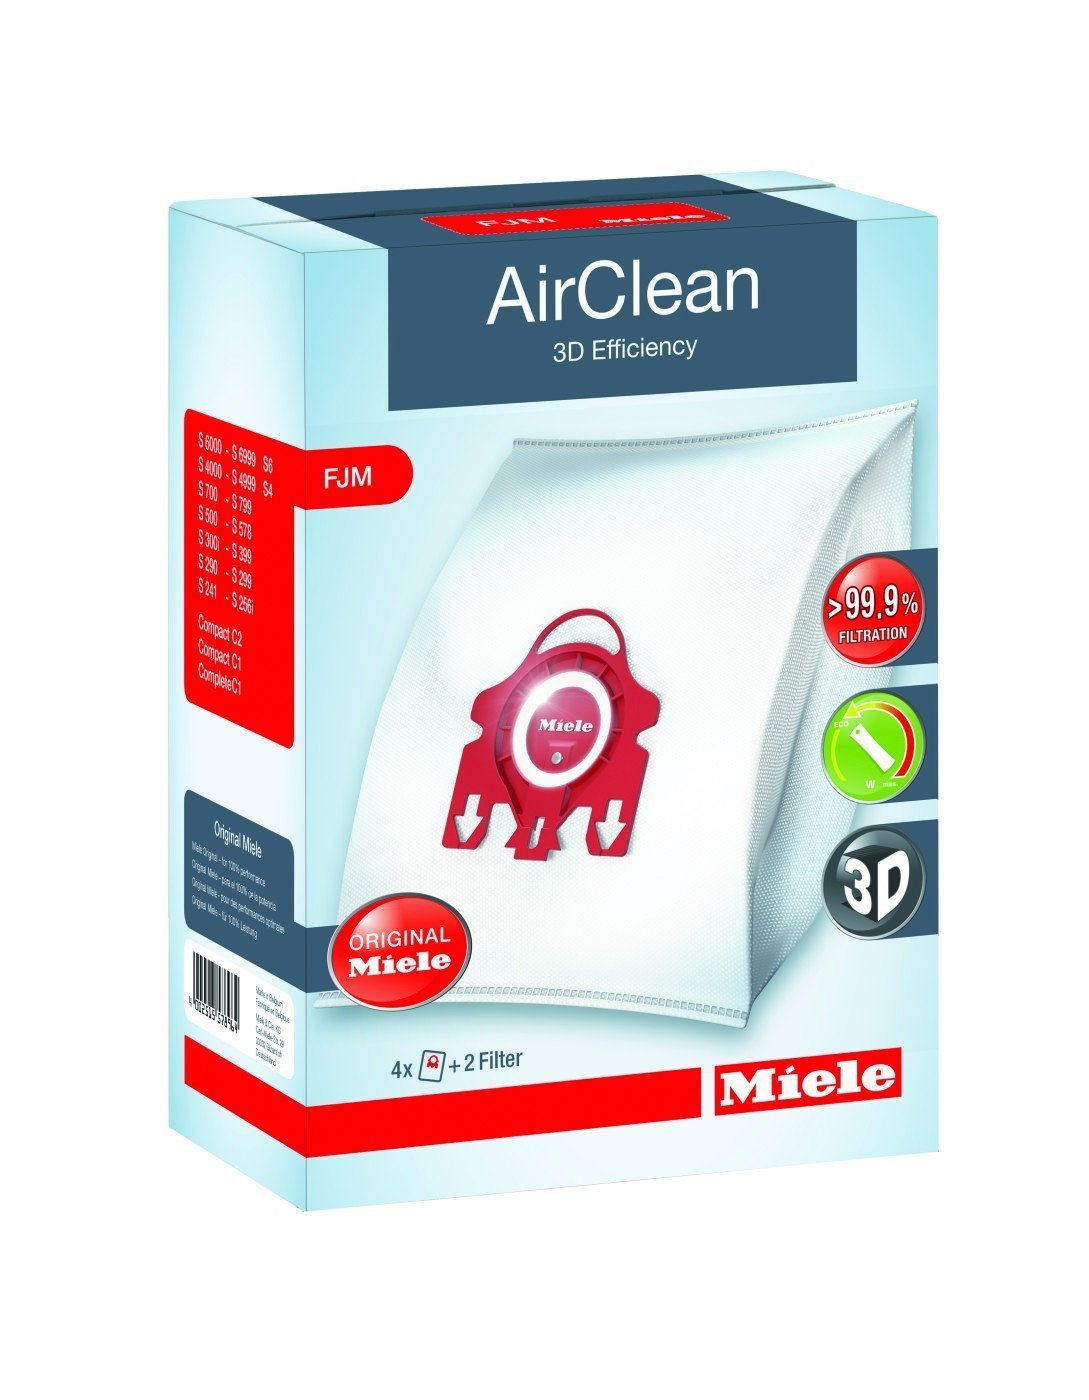 Genuine Miele Vacuum Cleaner AirClean Dust Bags Type FJM Pack of 4